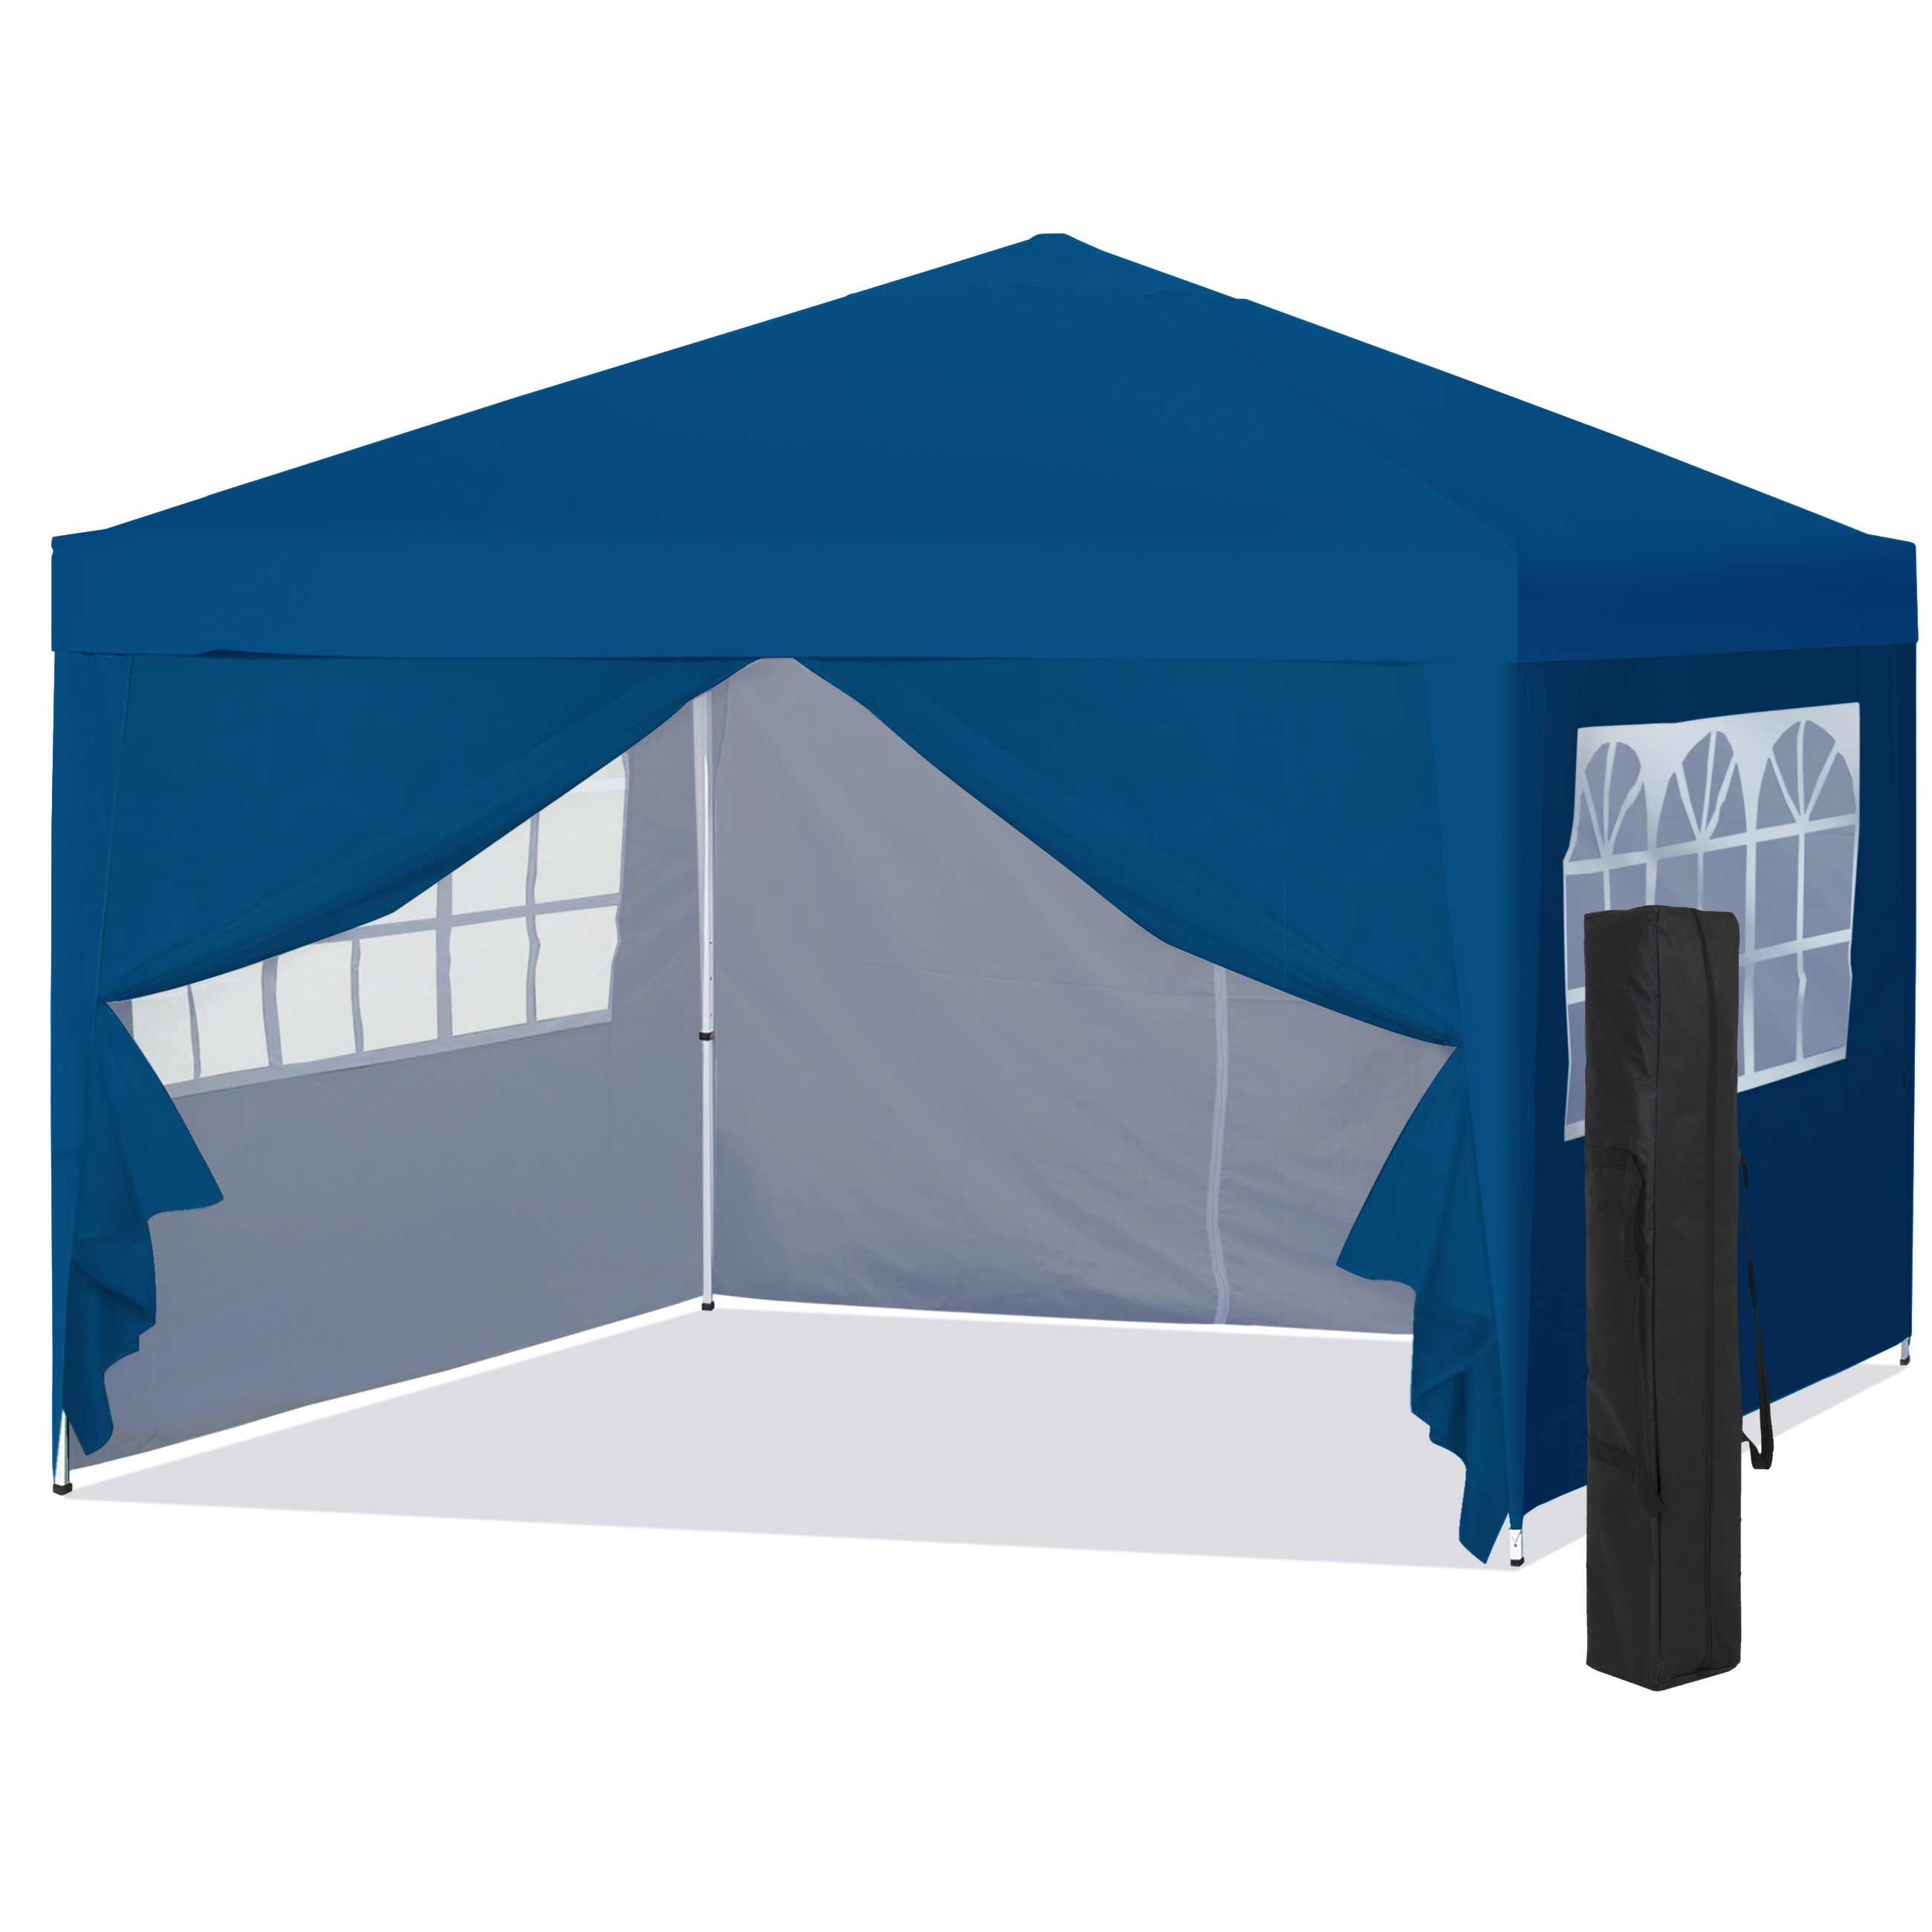 Best Choice Products 10' x 10' EZ Pop Up Canopy Tent Side Walls & Carrying Bag by